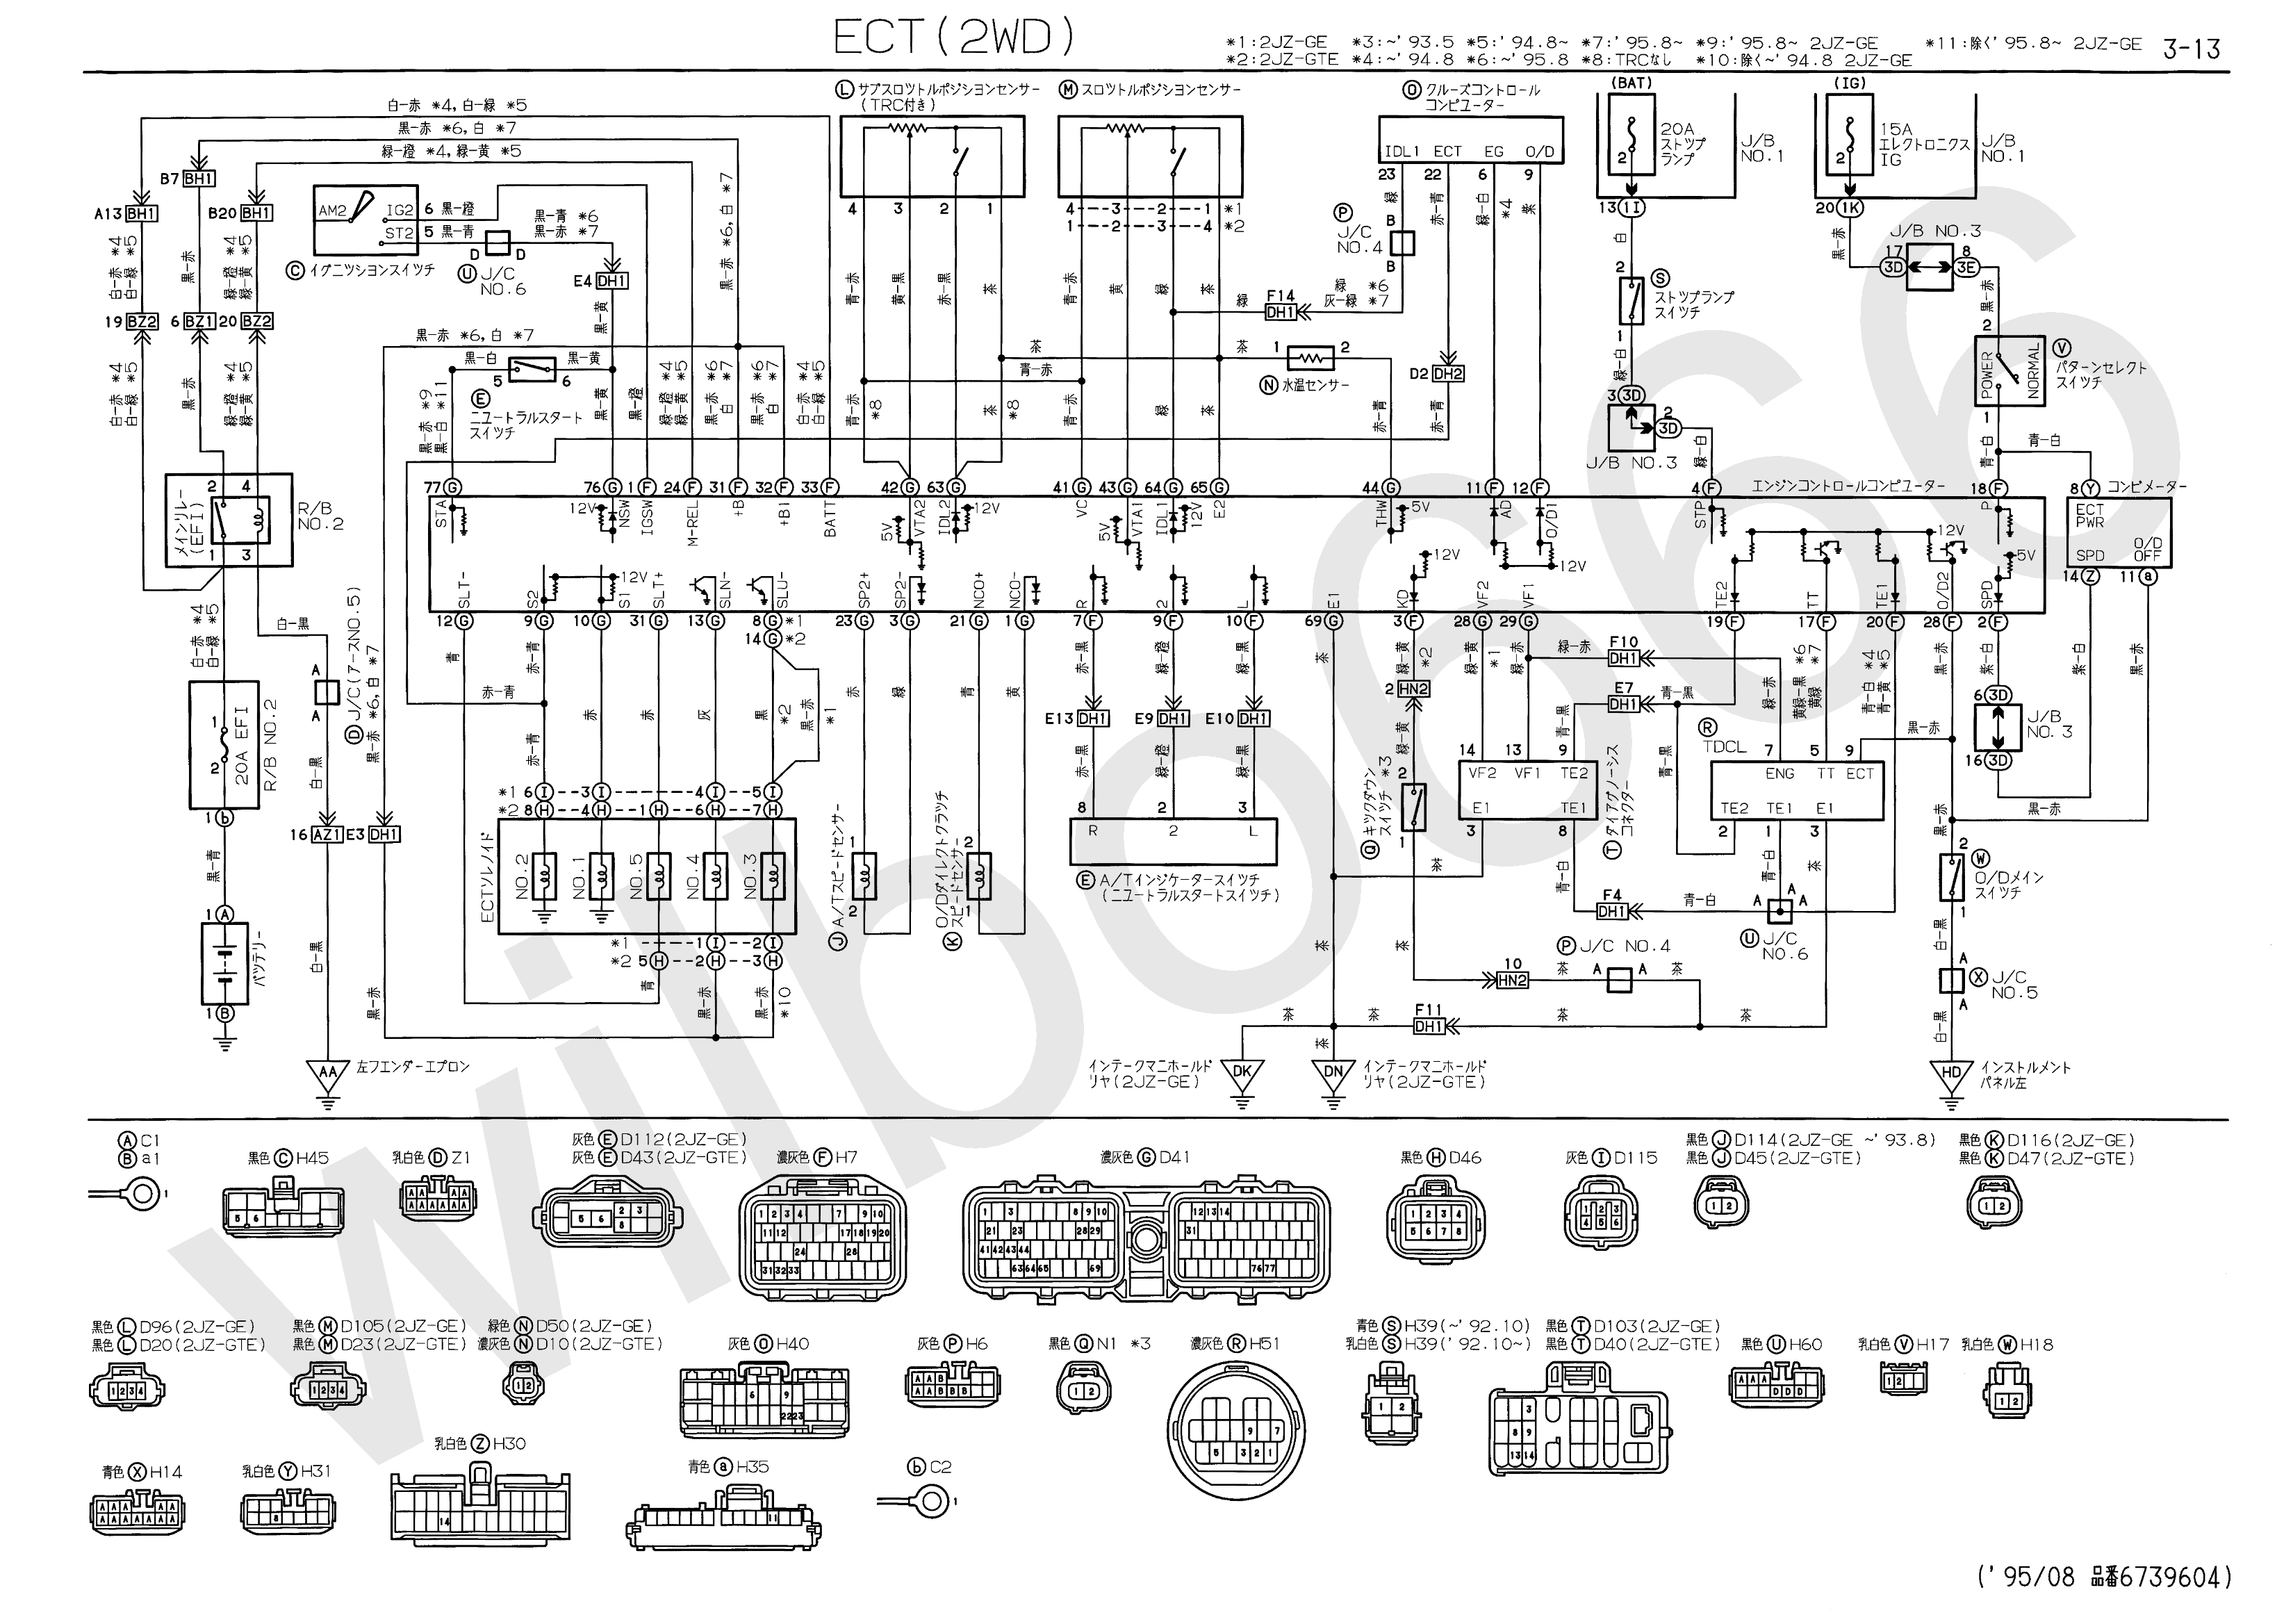 JZS14%23%2C+UZS14%23+Electrical+Wiring+Diagram+6739604+3 13 wilbo666 2jz gte jzs147 aristo engine wiring  at mifinder.co